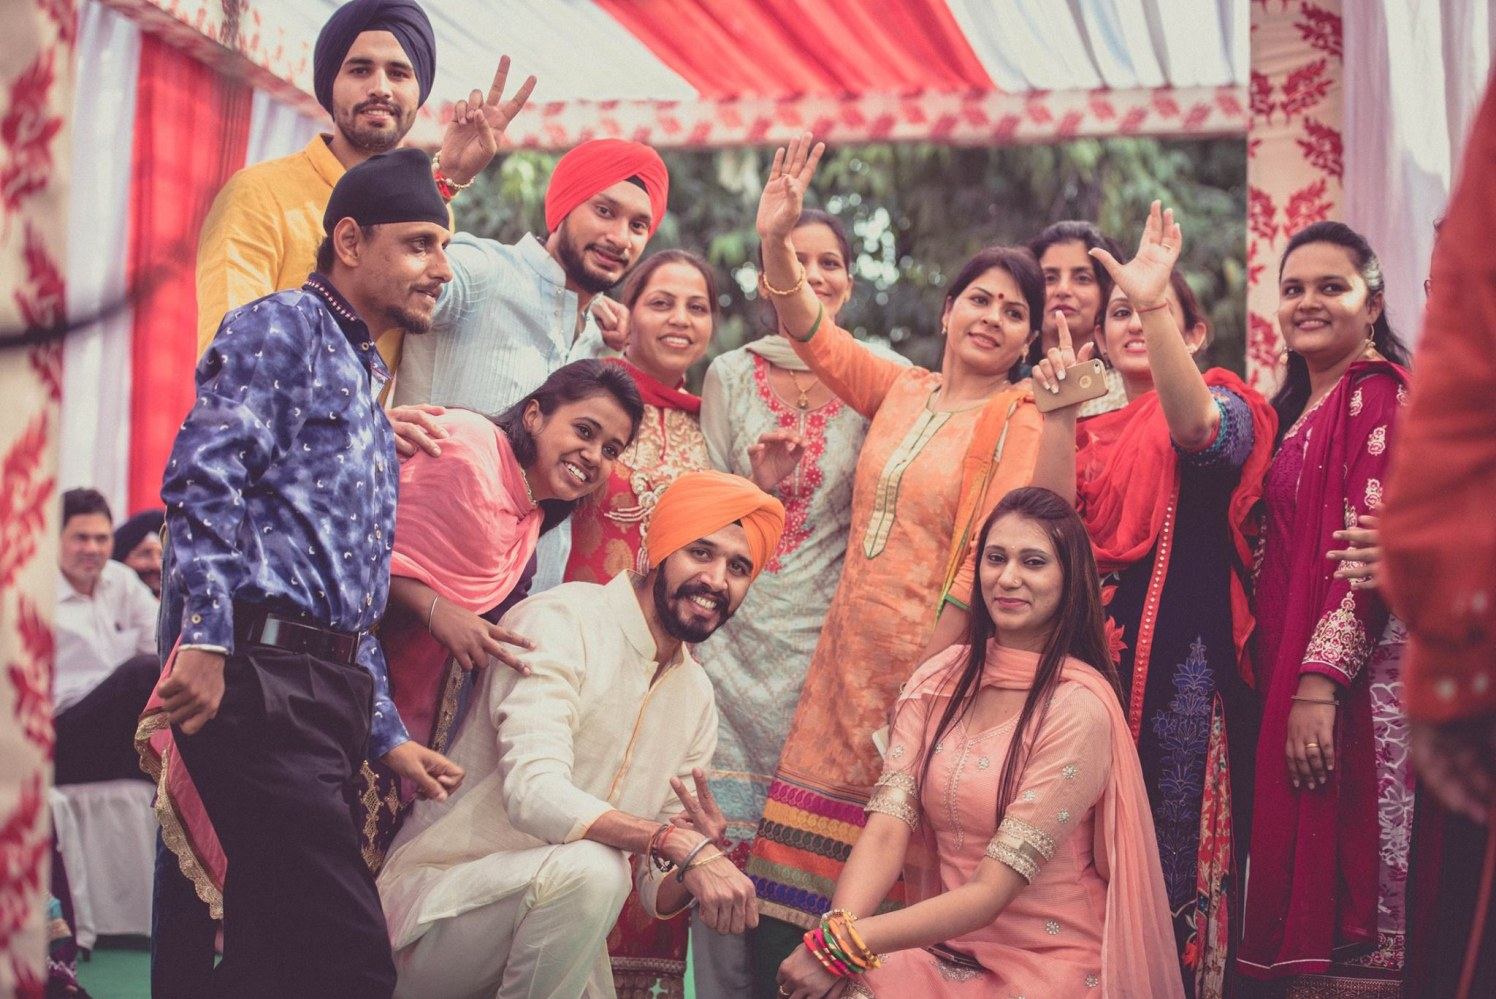 The Indian family Wedding Celebrations by Dushyantha Kumar C Wedding-photography | Weddings Photos & Ideas